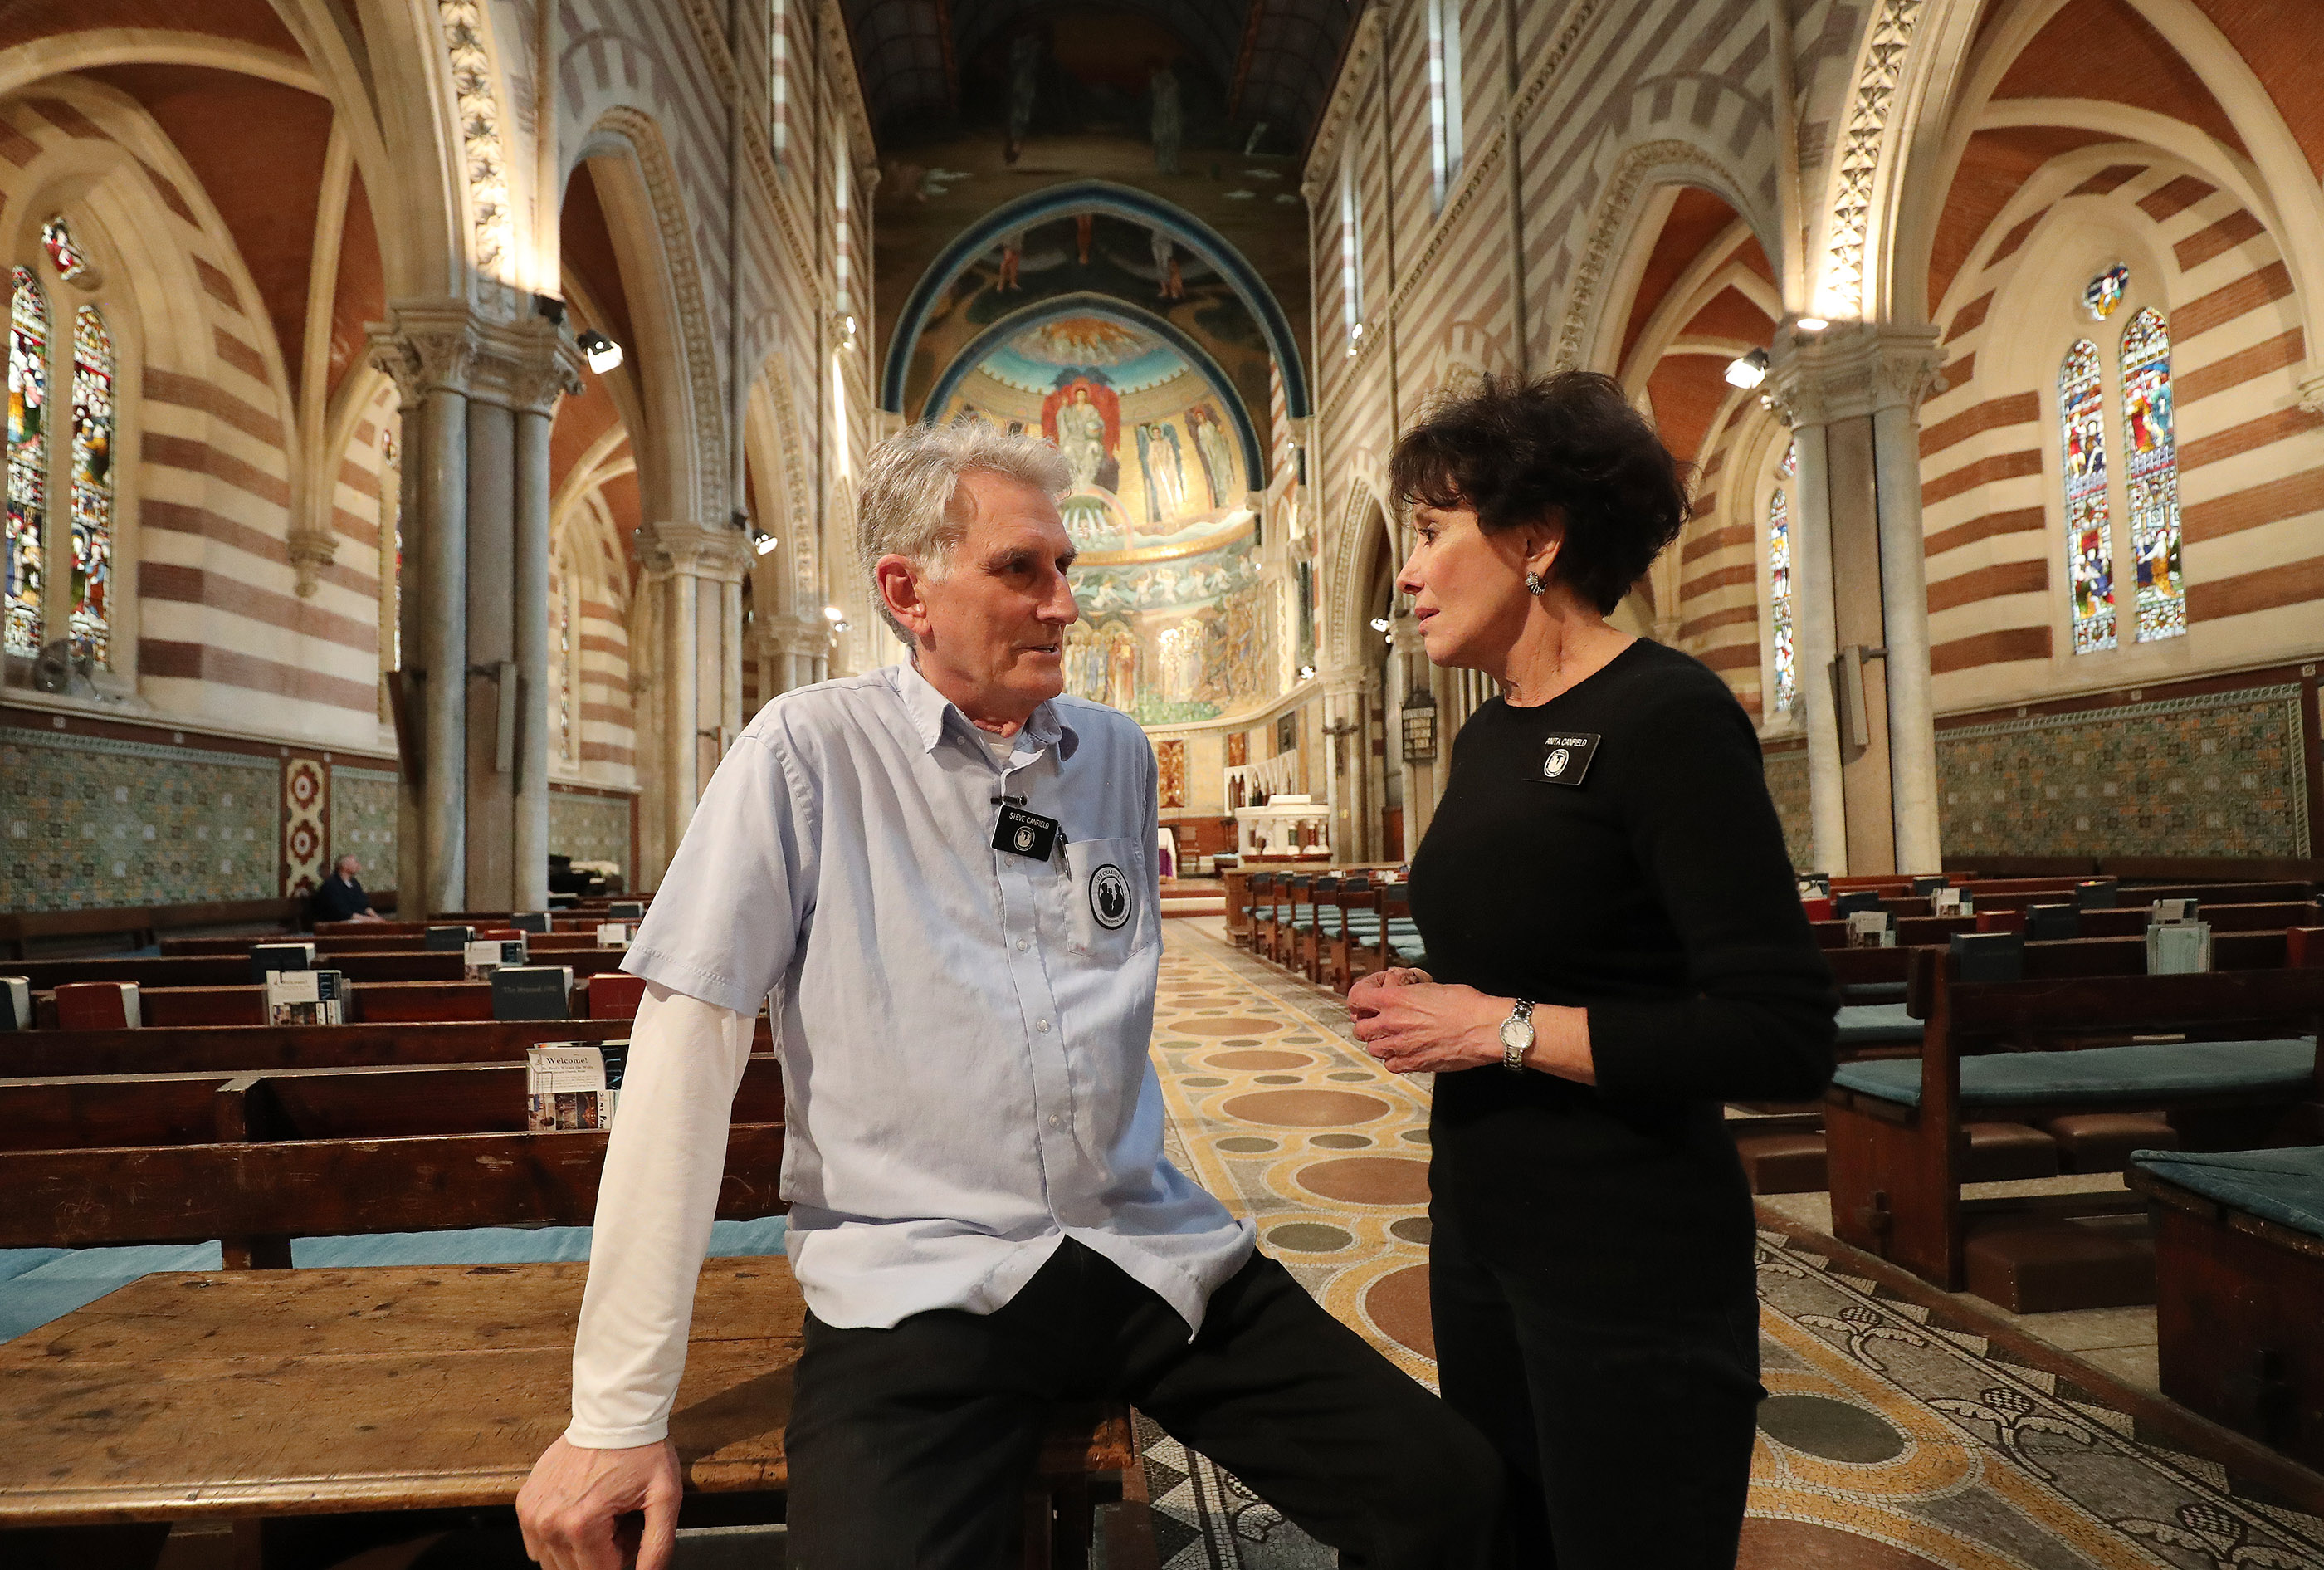 Latter-day Saint Charities missionaries Steve and Anita Canfield talk at St. Paul's Within the Walls Episcopal Church in Rome, Italy on Thursday, March 7, 2019. TThe Church of Jesus Christ of Latter-day Saints partners with the Catholic church to help refugees.